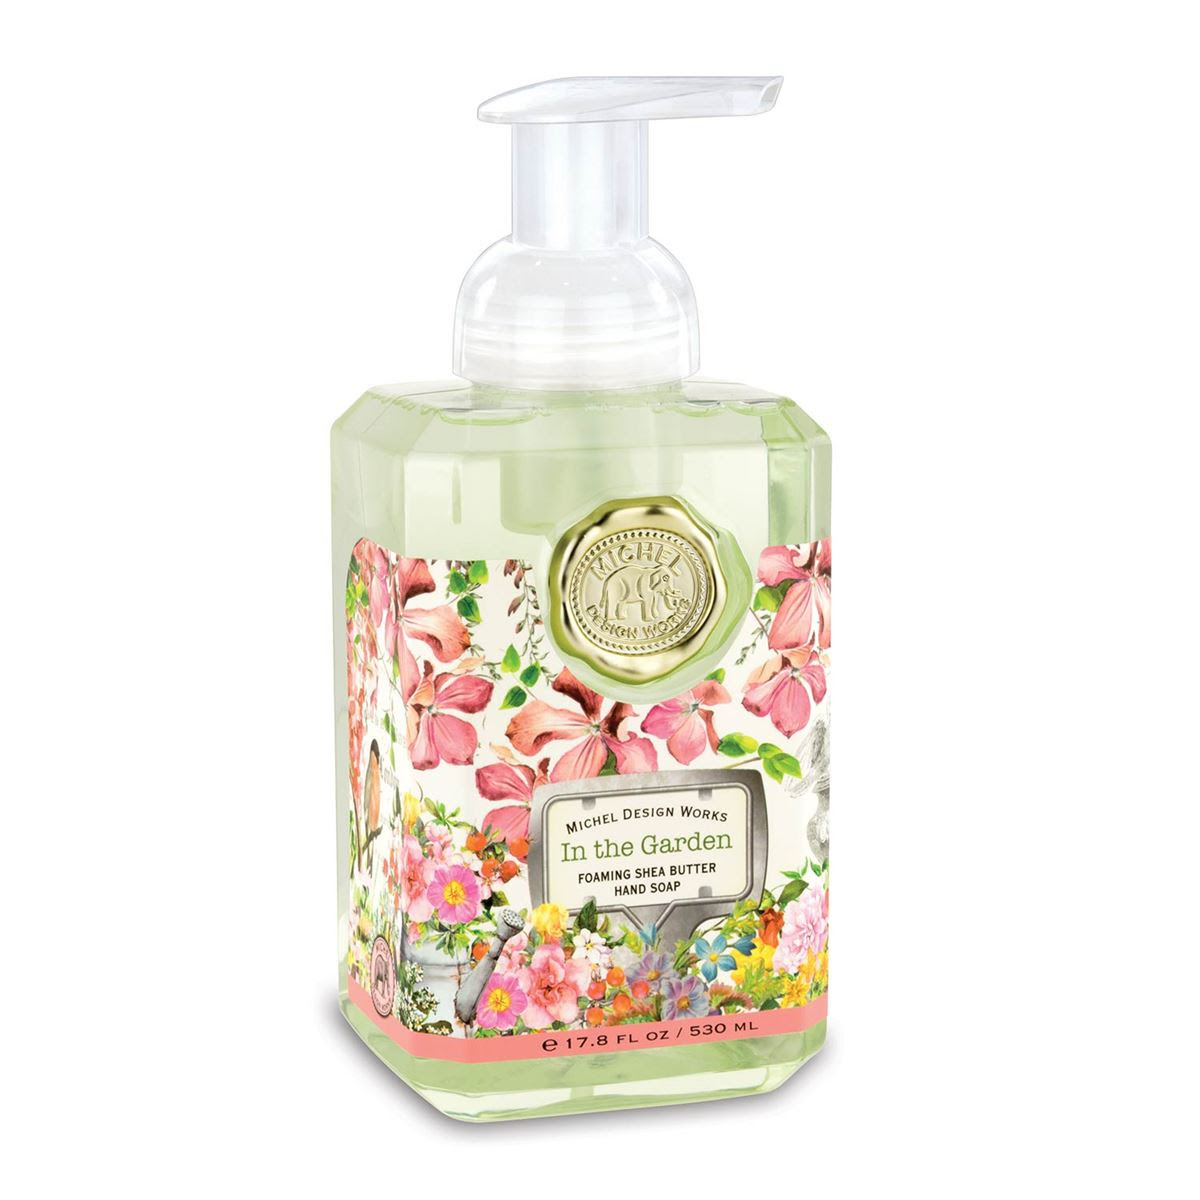 Foaming Hand Soap By Michel Design Works In The Garden